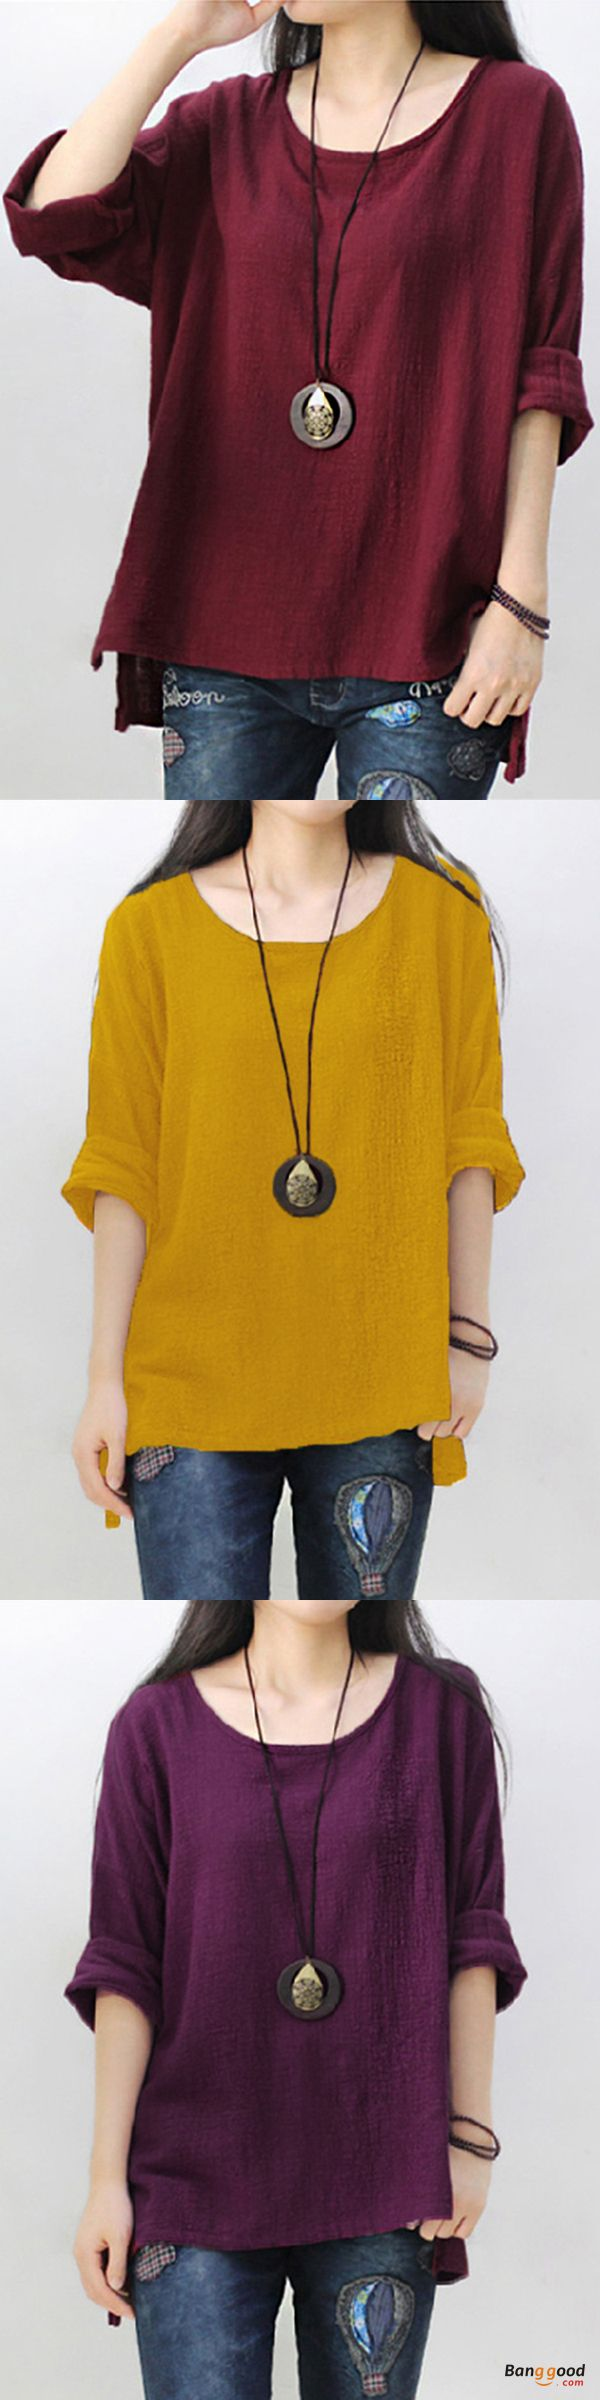 US$17.99+Free shipping. Size: S~5XL. Color: Black, Burgundy, Purple, Yellow. Material: Cotton. Fall in love with casual and vintage style! Women's Fashion, Blouses For Women, Blouse Outfits, Off Shoulder Top.